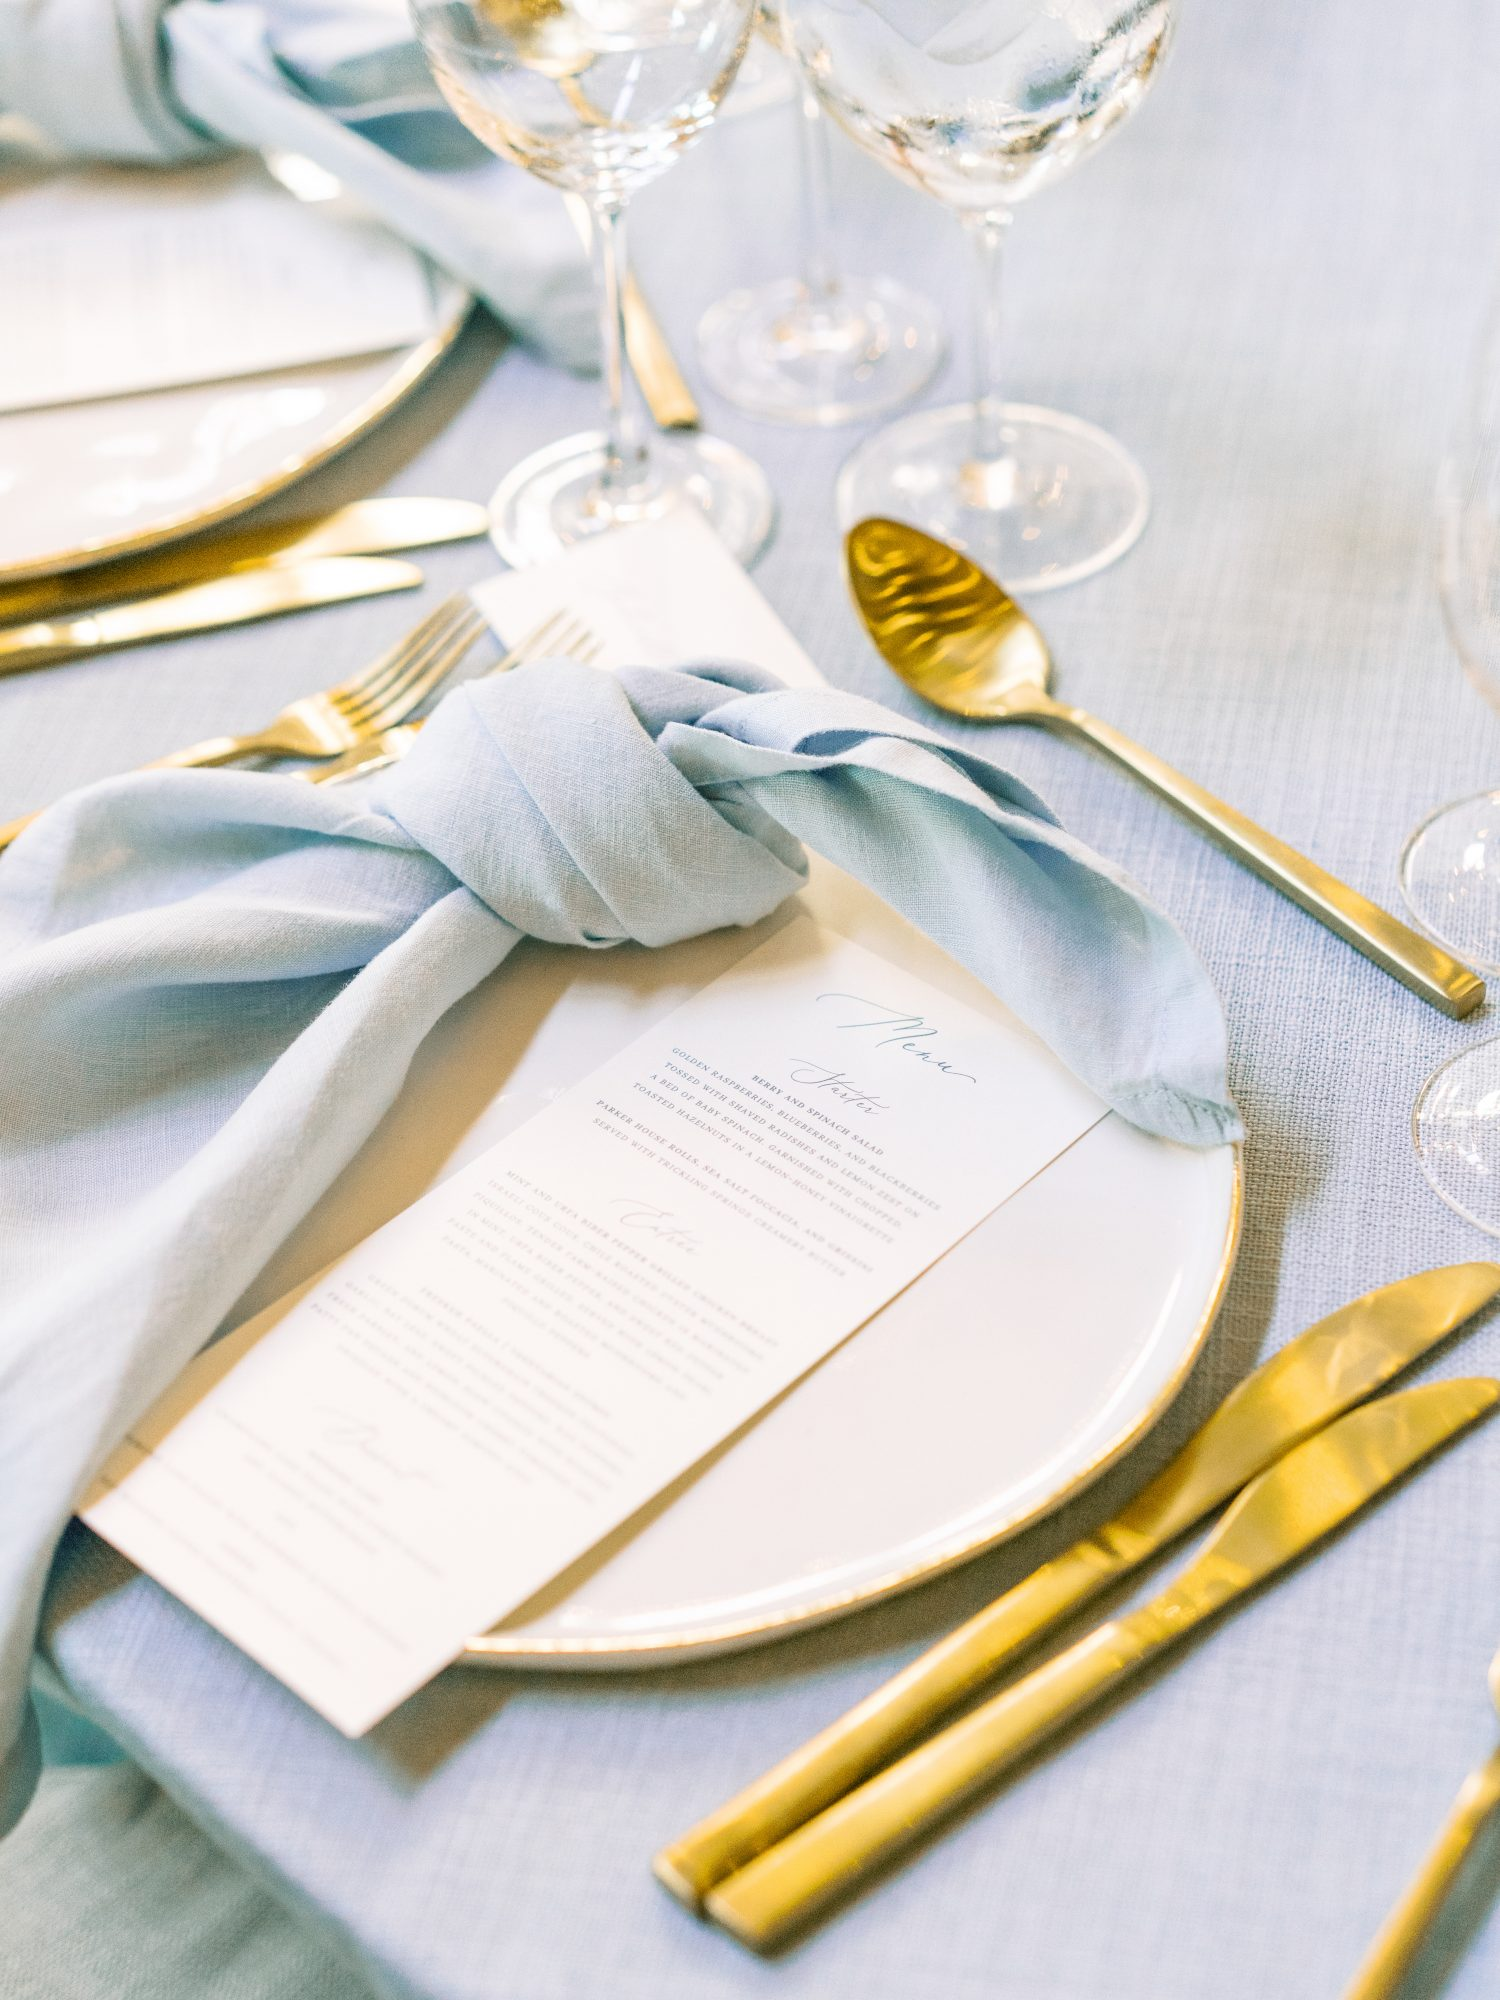 katelyn jose wedding menu with blue napkin